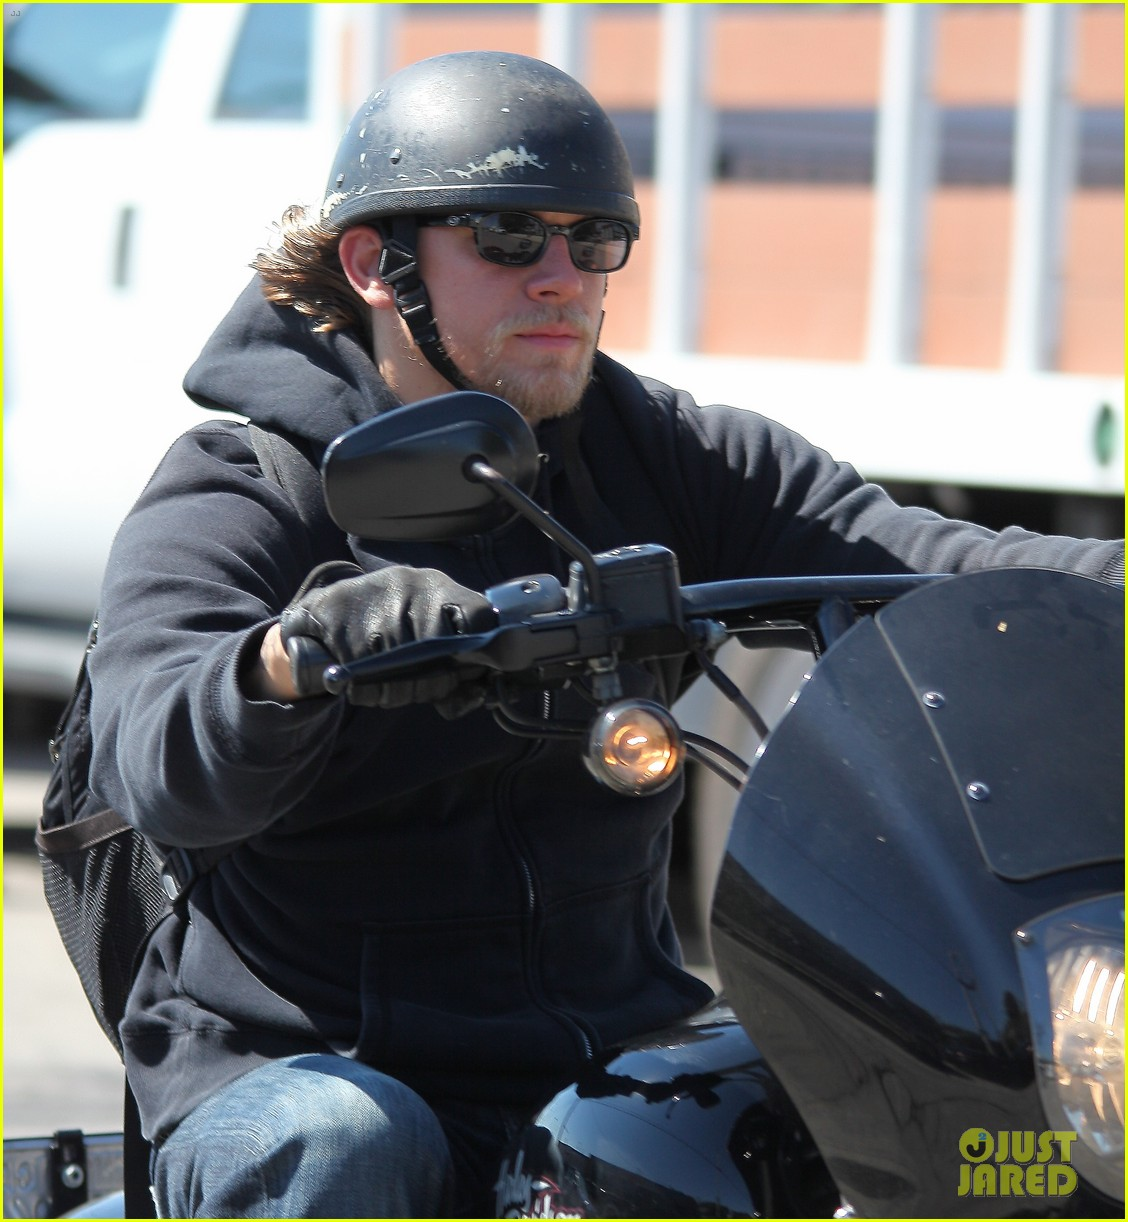 Phenomenal Charlie Hunnam Rides Motorcycle To Work On Sons Of Anarchy Short Hairstyles For Black Women Fulllsitofus